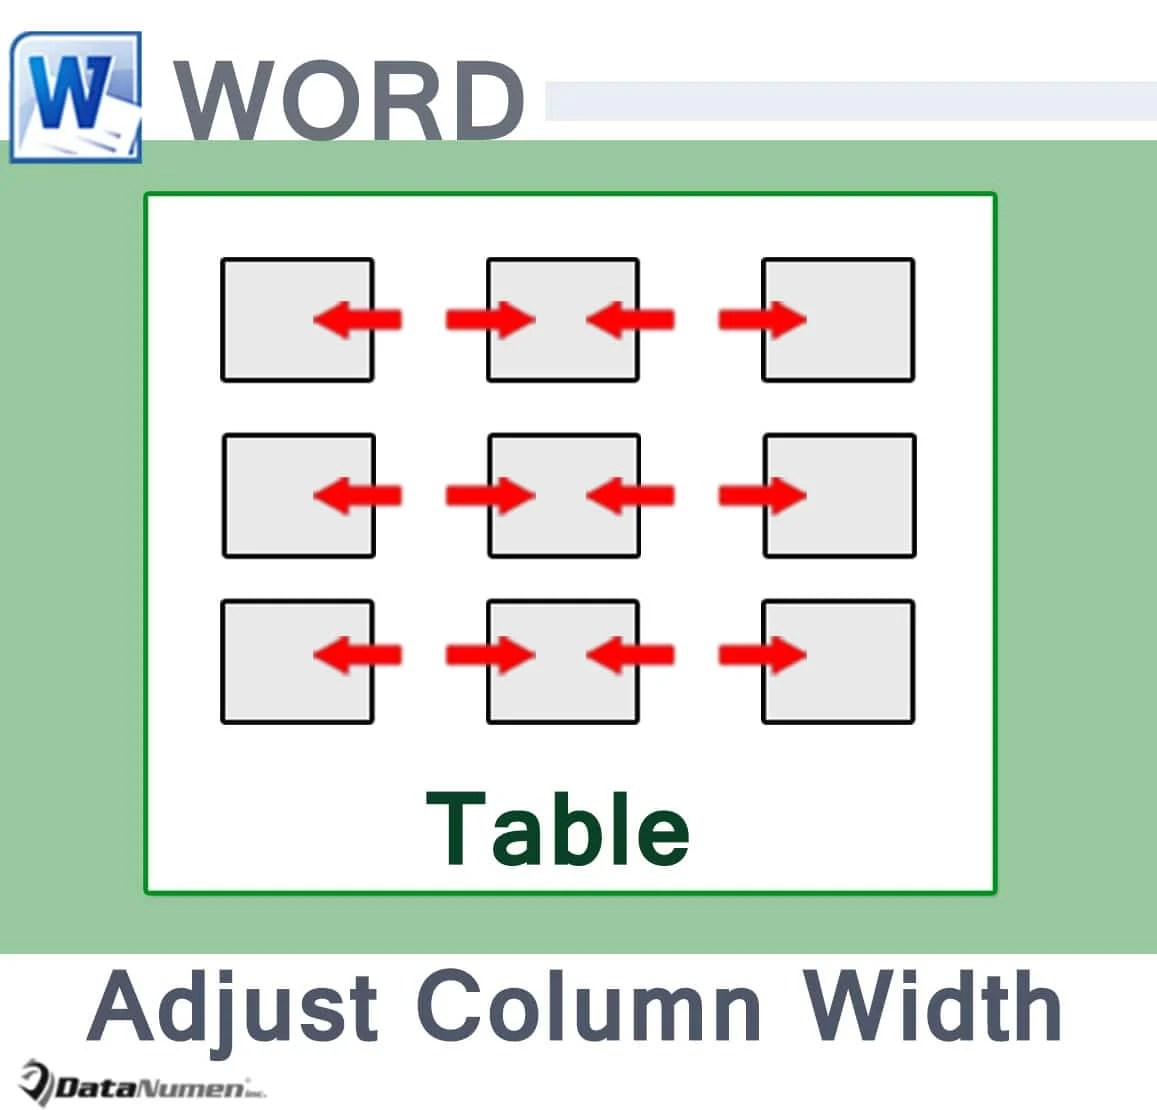 Adjust Column Width in Your Word Table